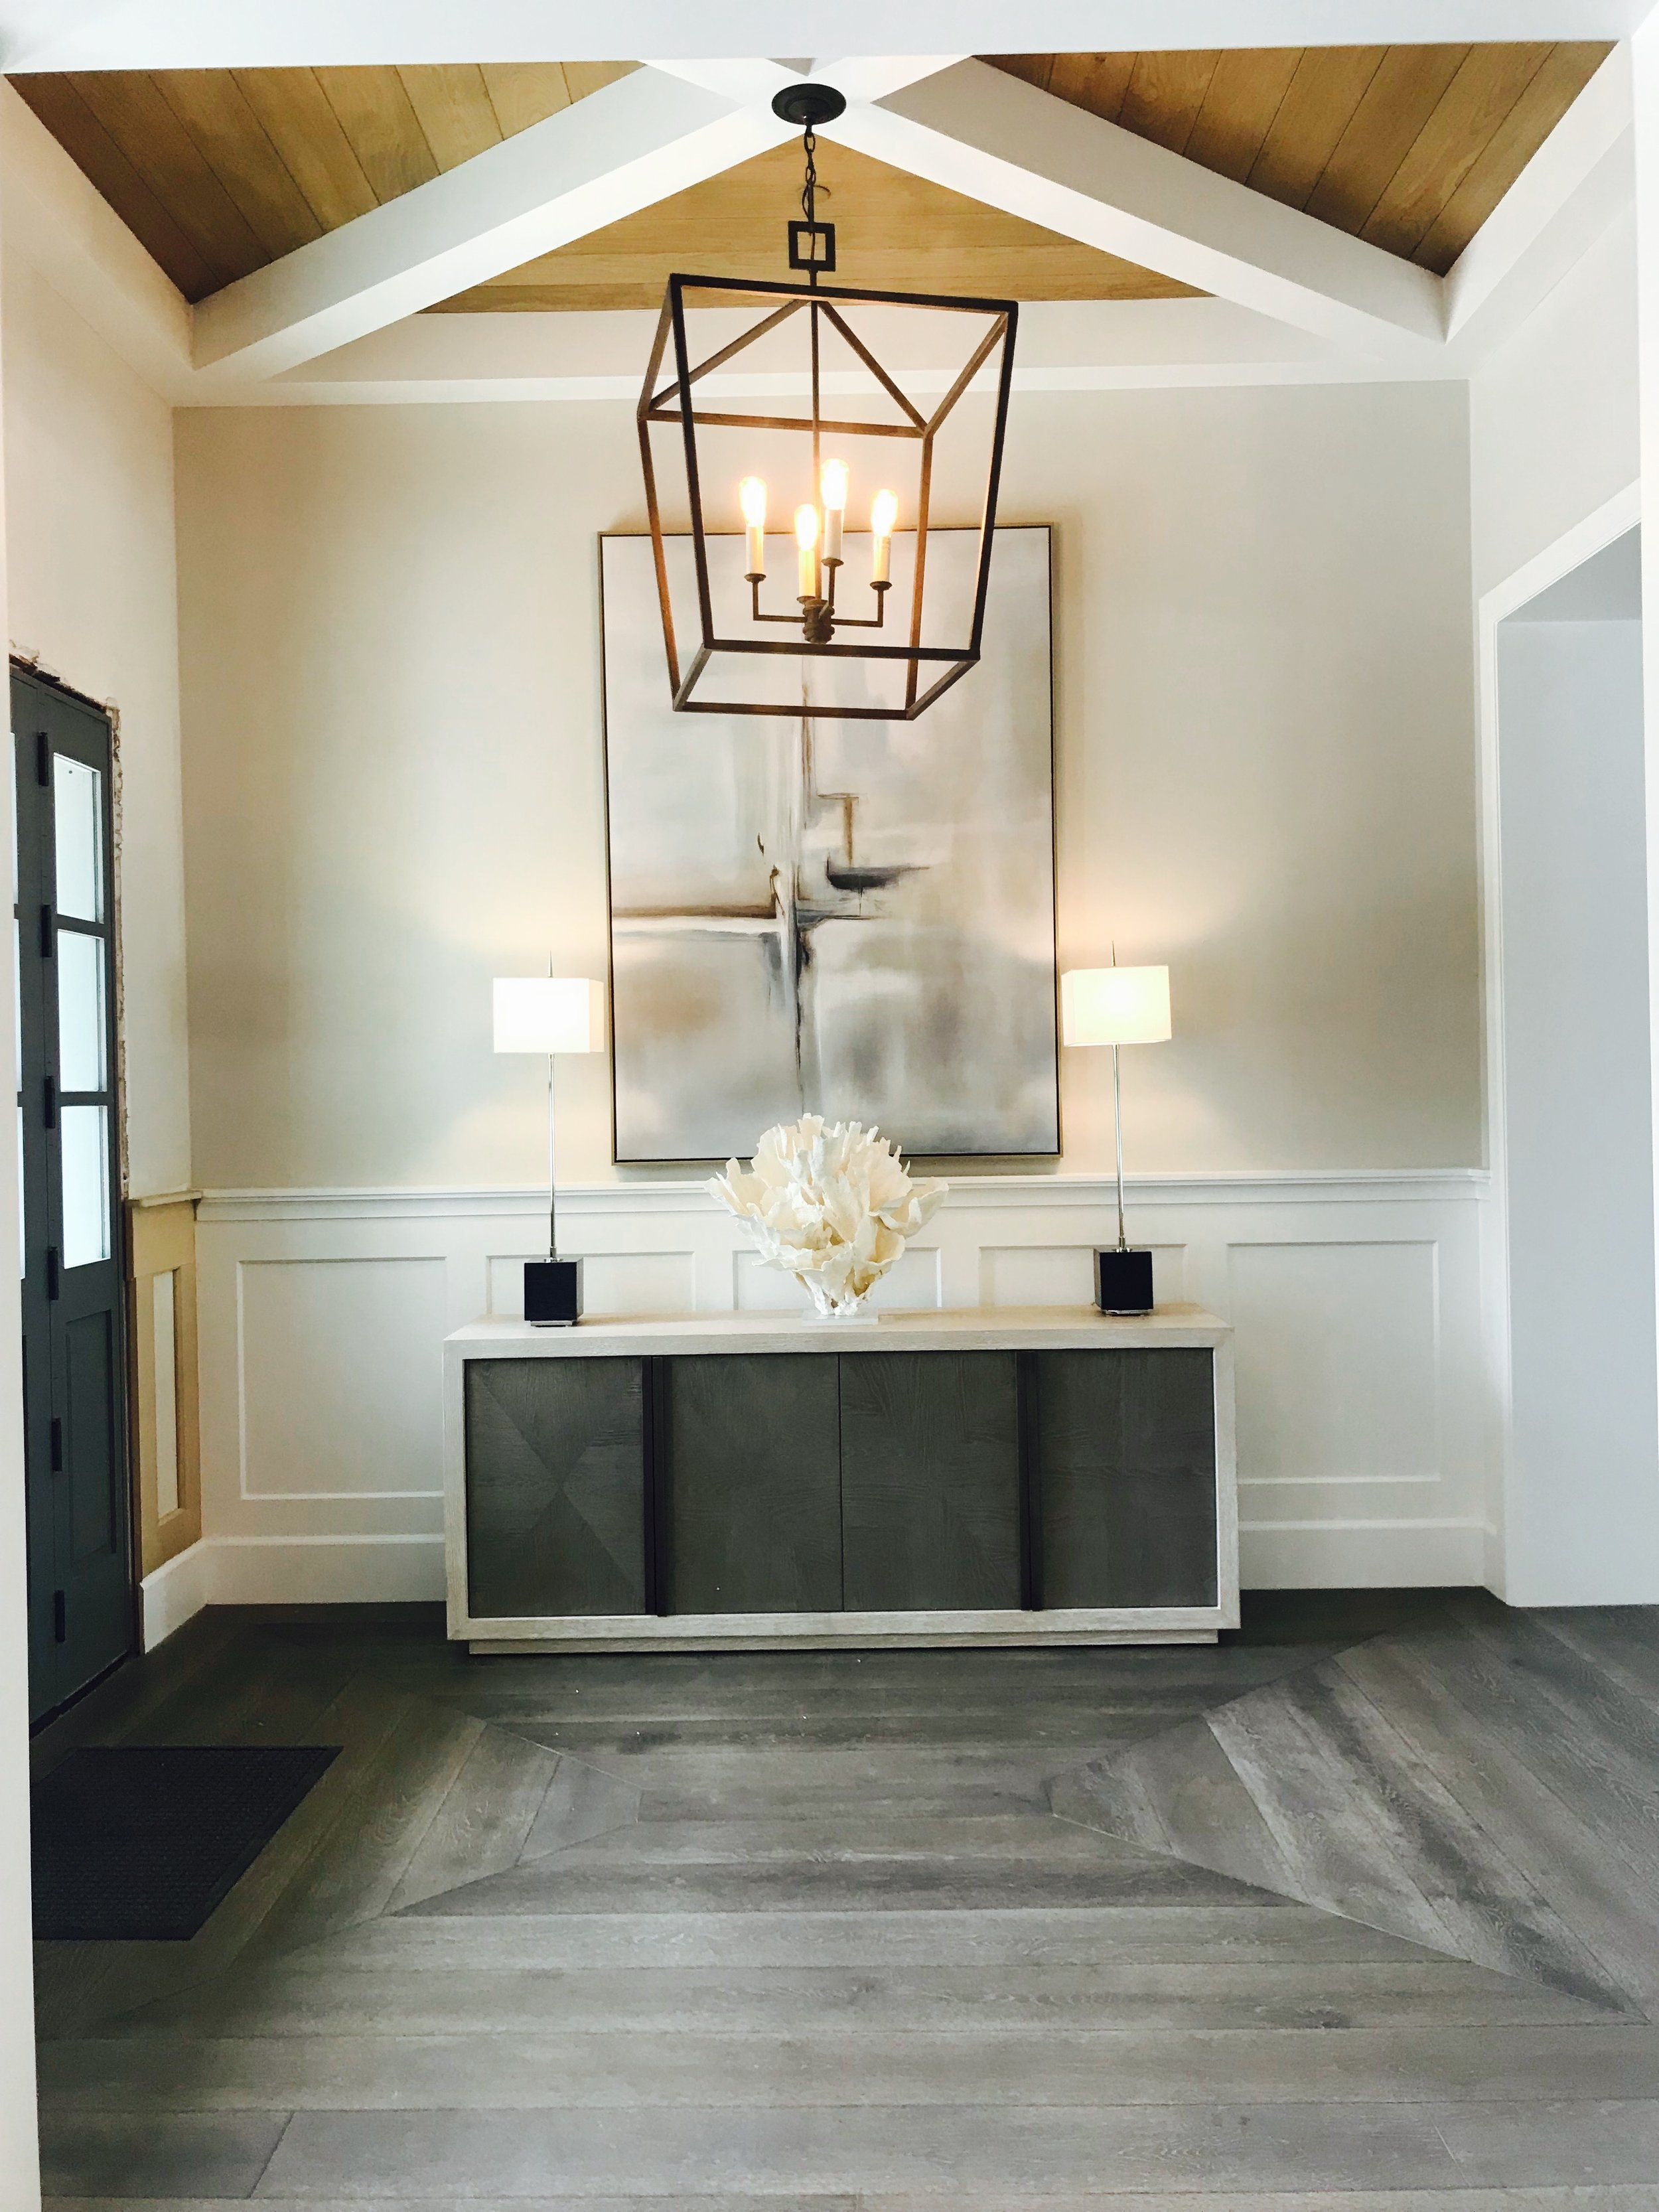 A central dark iron chandelier suspends from cross beams at the ceiling with warm wood T&G between.